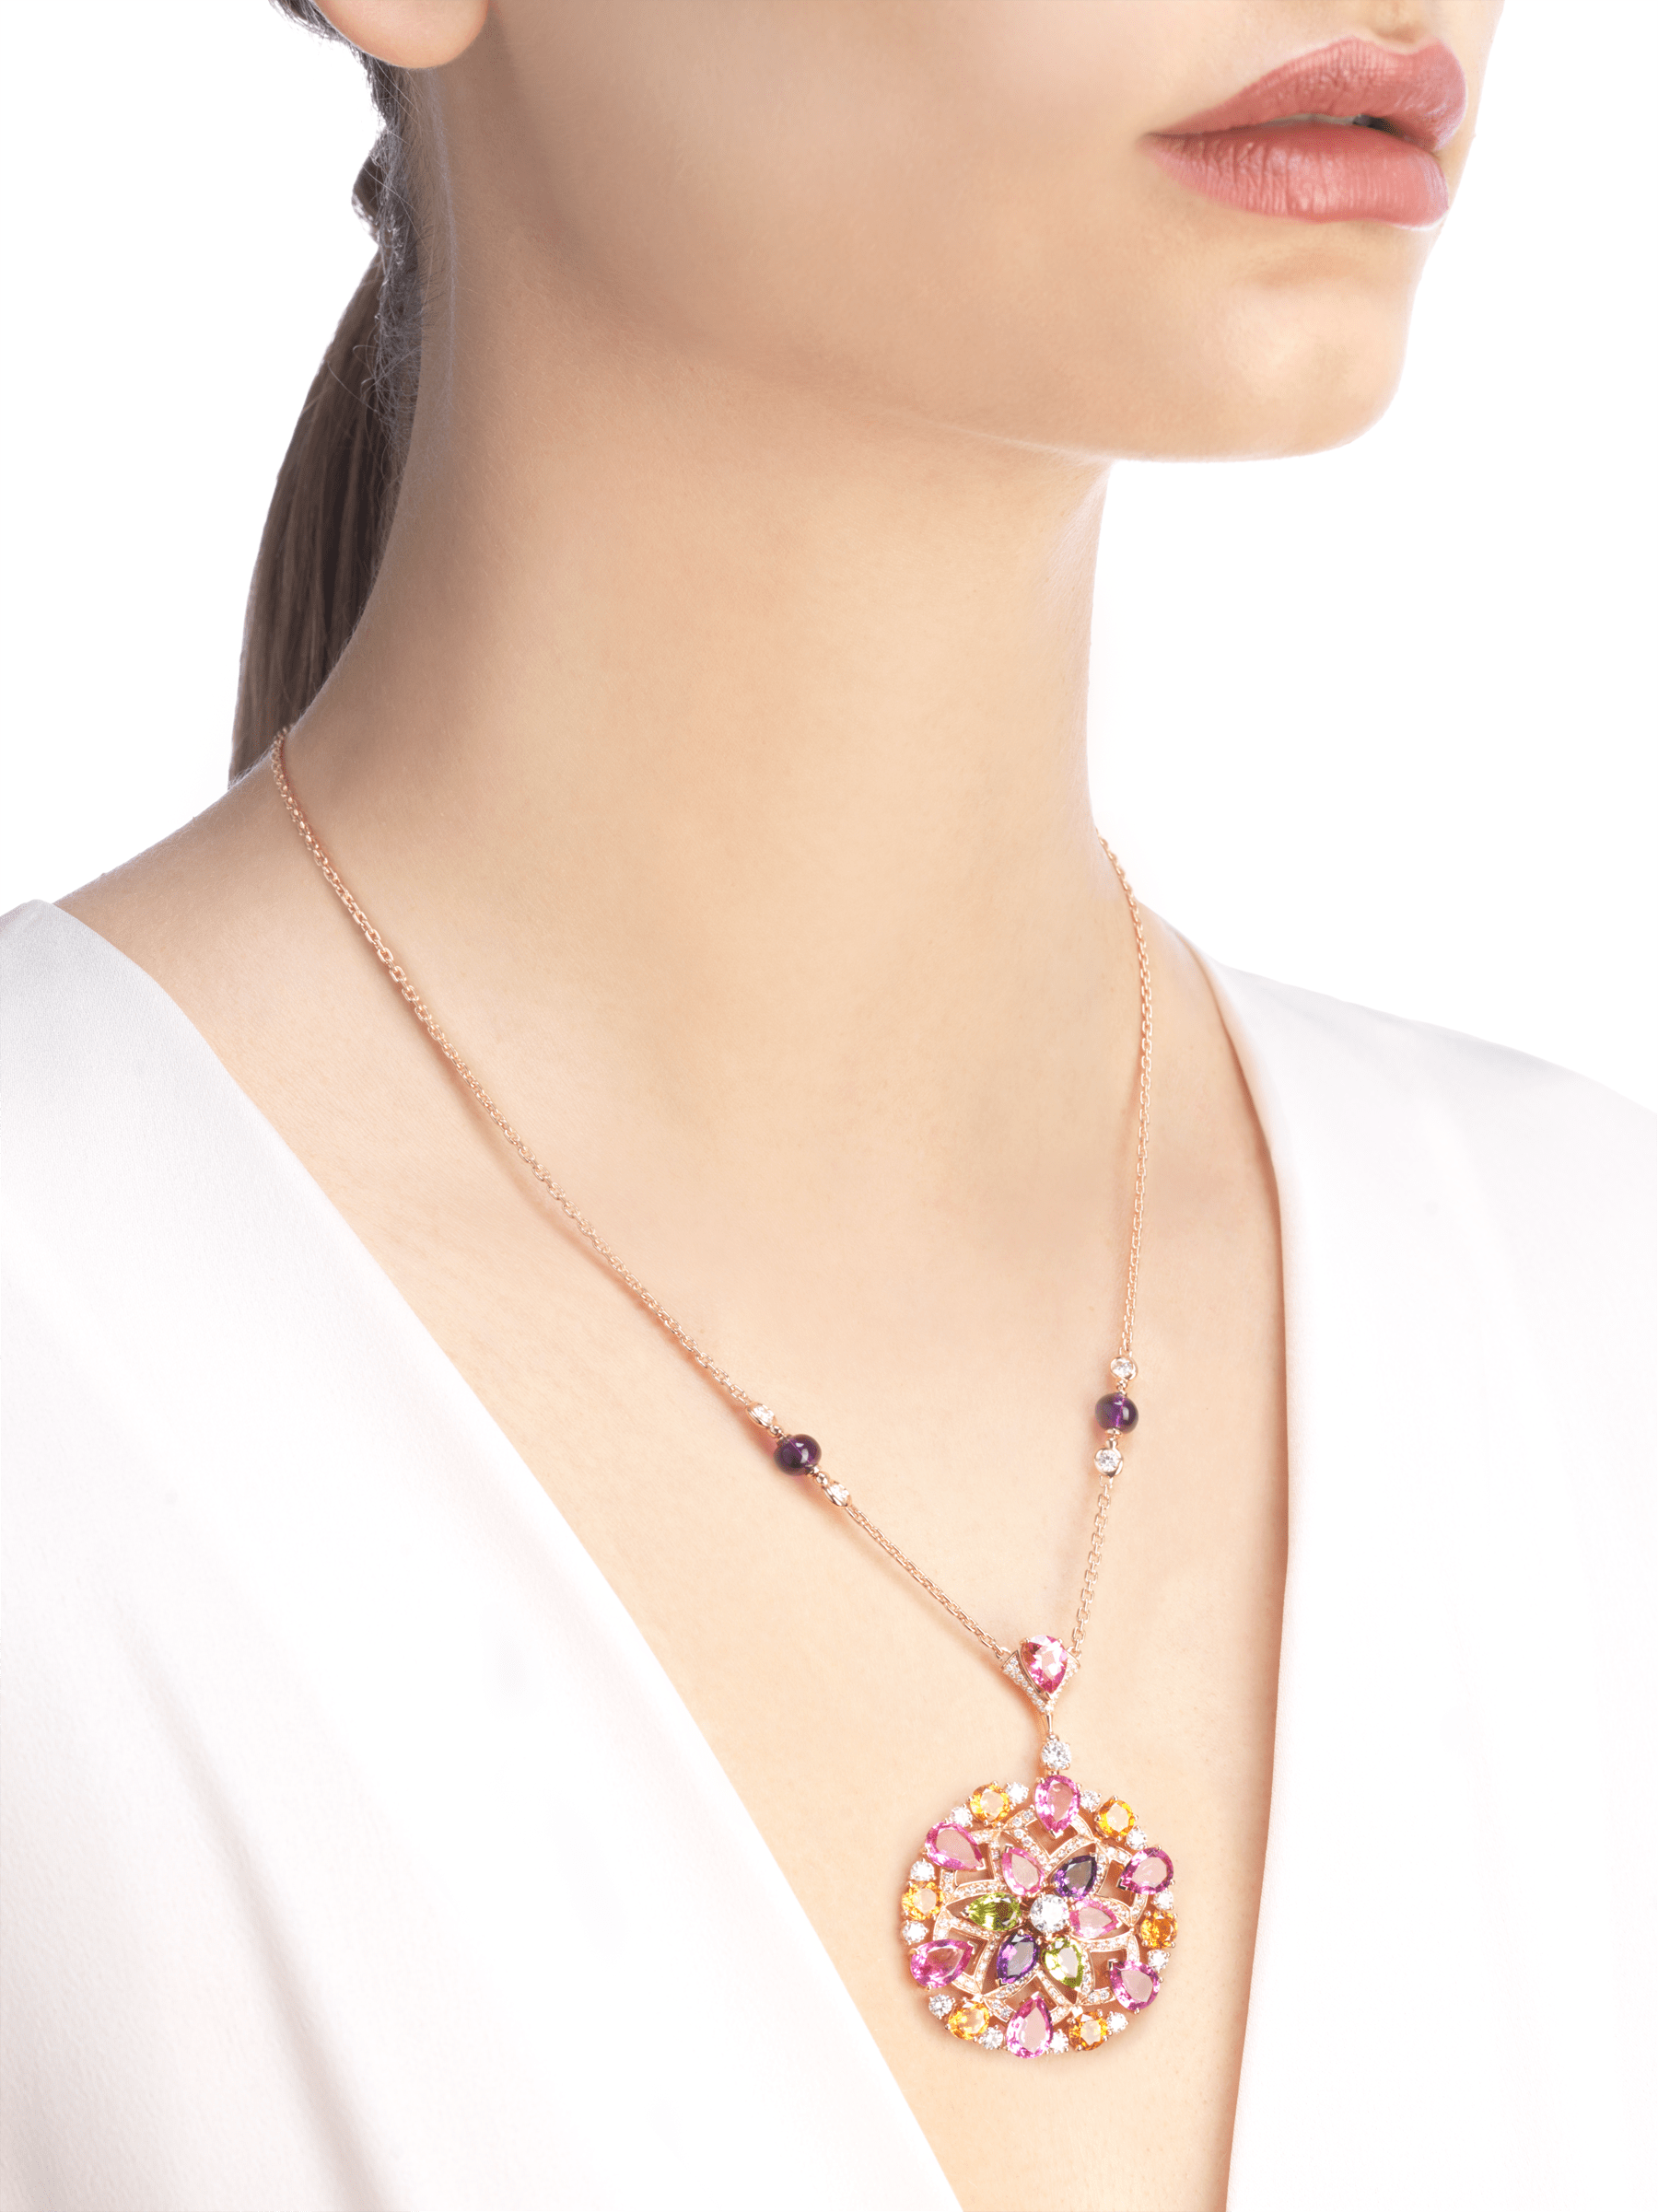 DIVAS' DREAM 18 kt rose gold necklace set with coloured gemstones, brilliant-cut and pavé diamonds. 355907 image 2